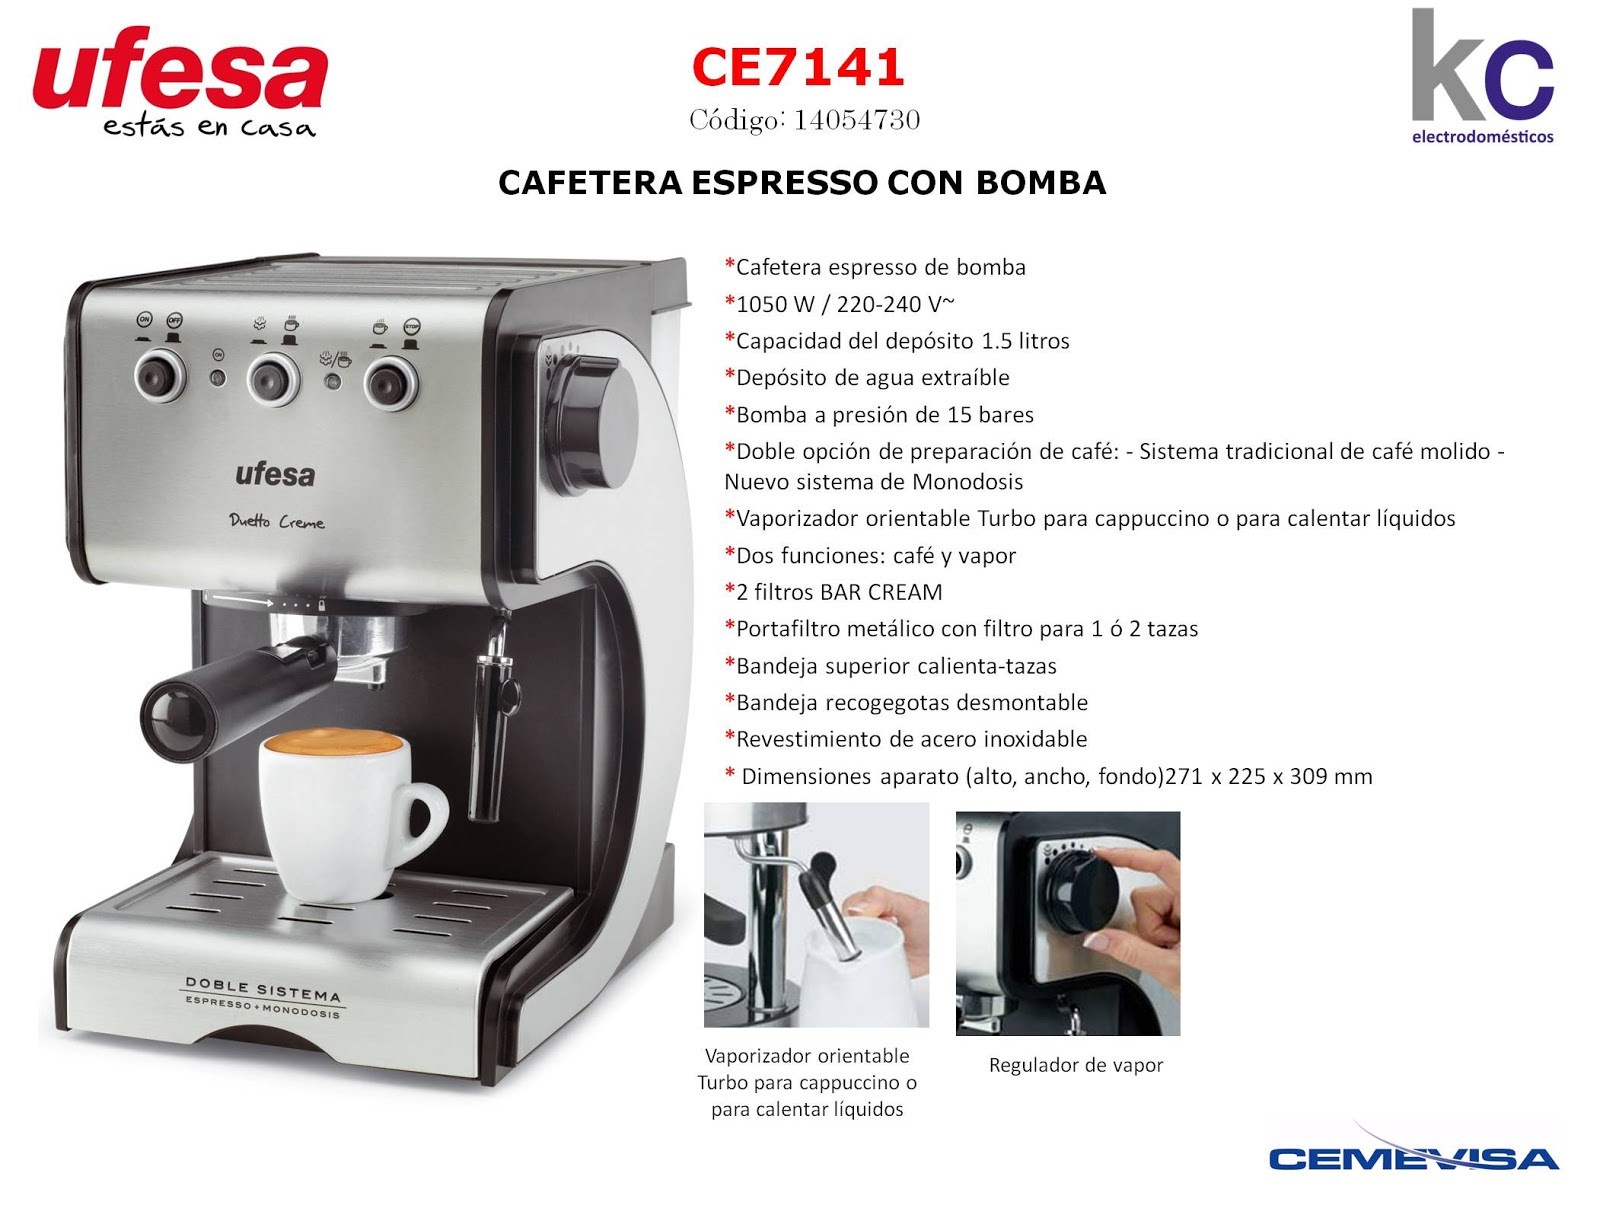 Ufesa ce7141 - Cafetera express amazon ...